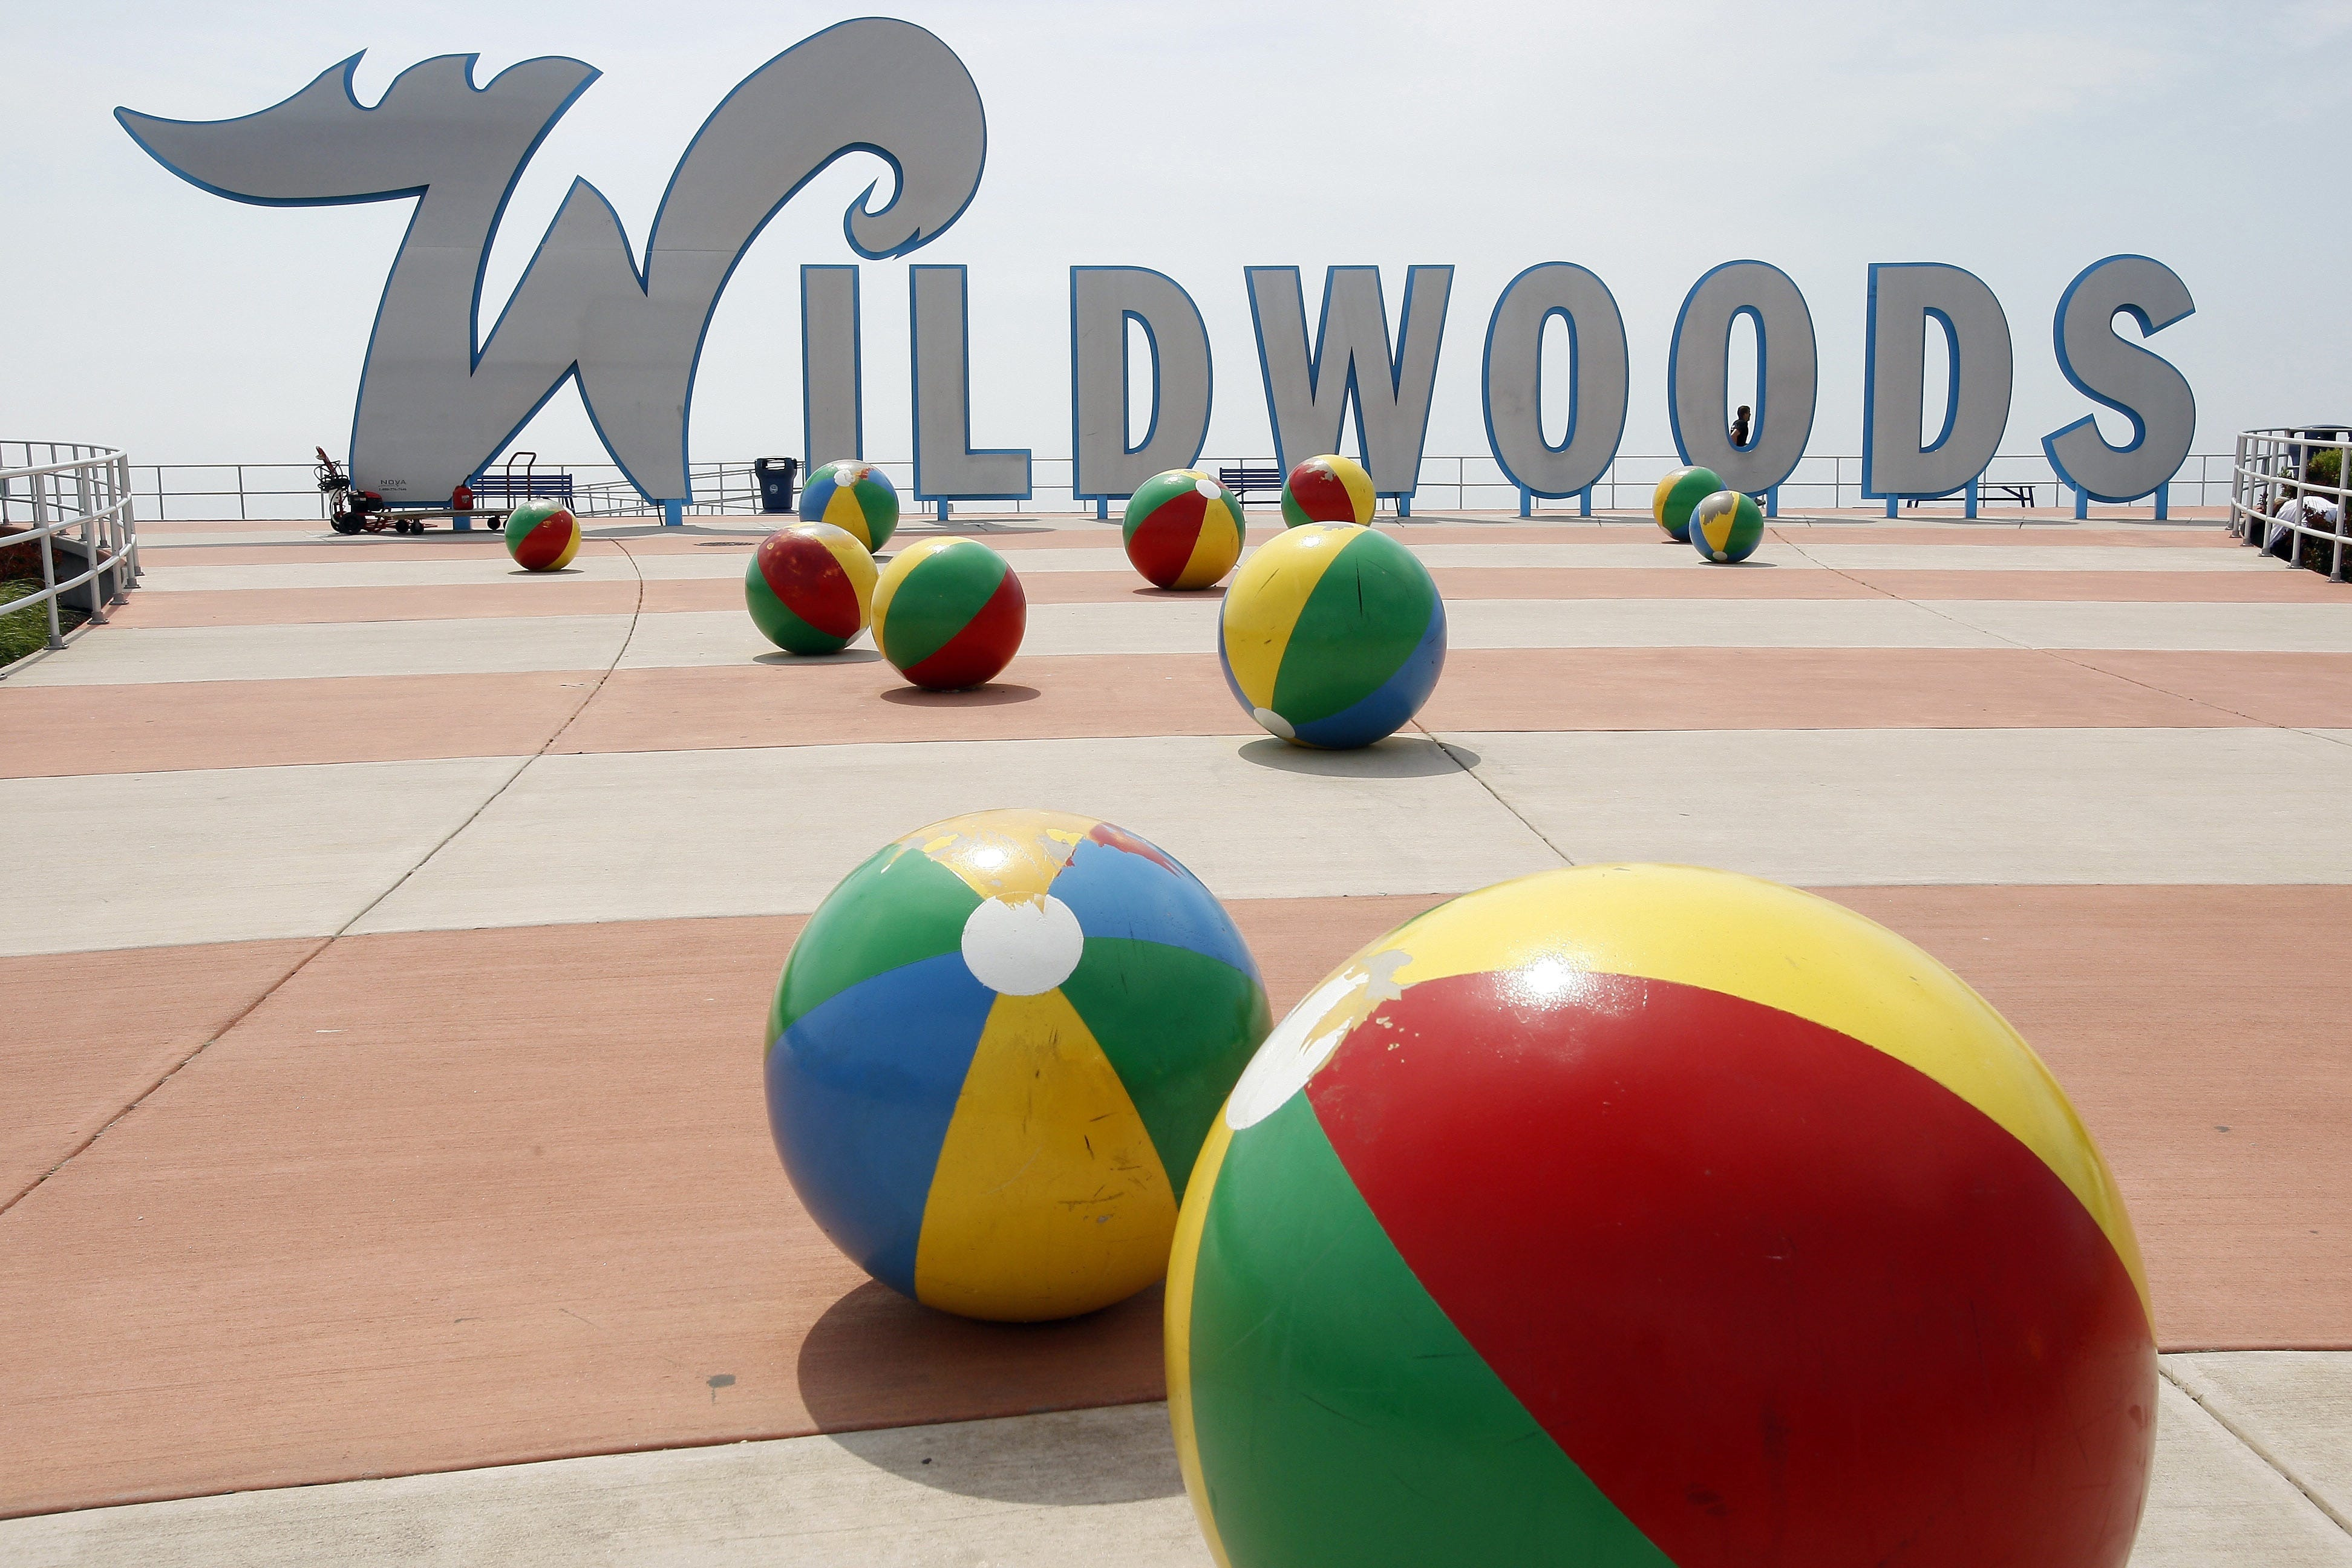 Free Living social deals wildwood nj